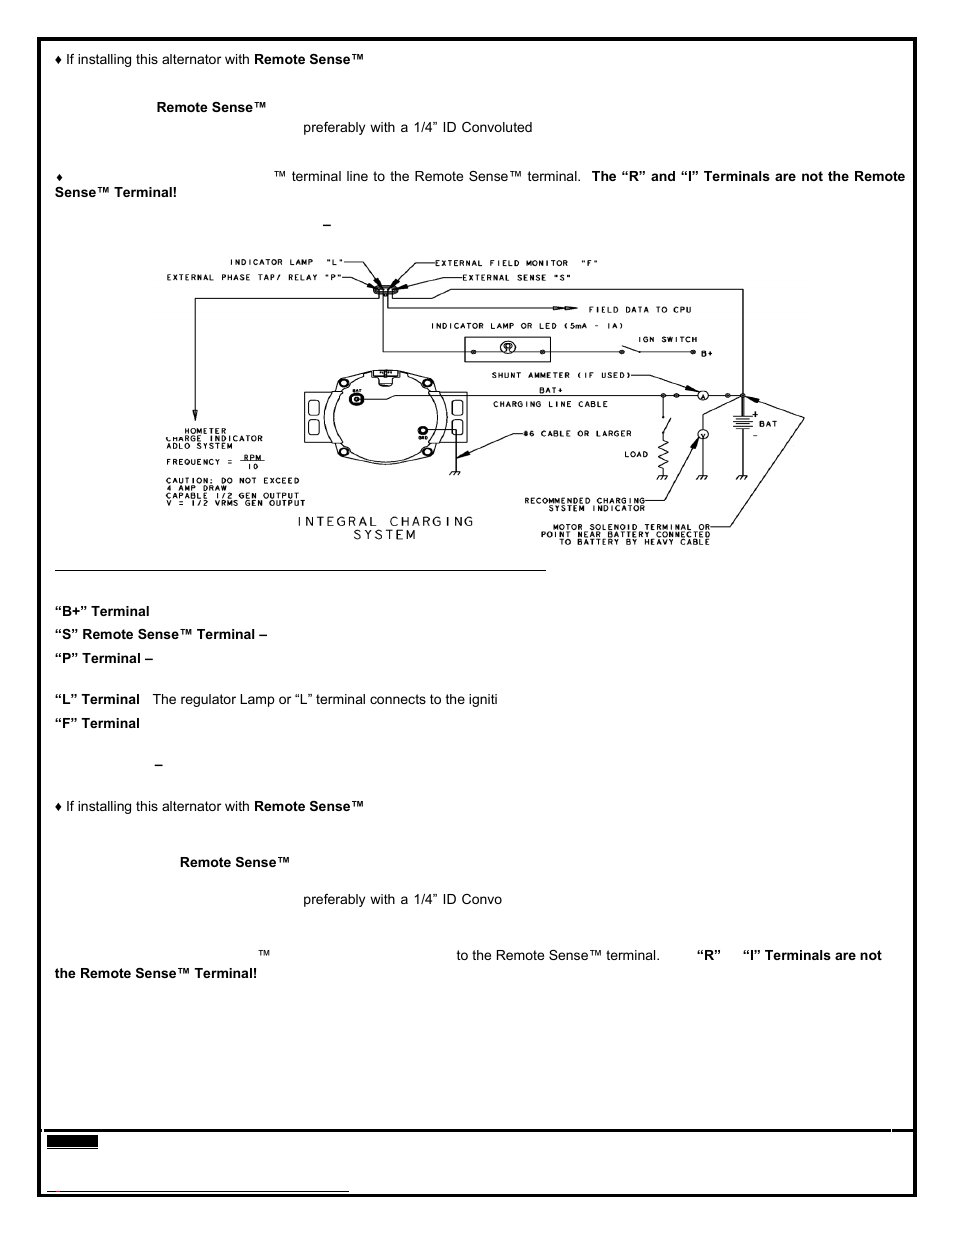 Delco 28si Alternator Wiring Diagram Diagrams Gm Remy Sfl P Electric Motor 3 Wire